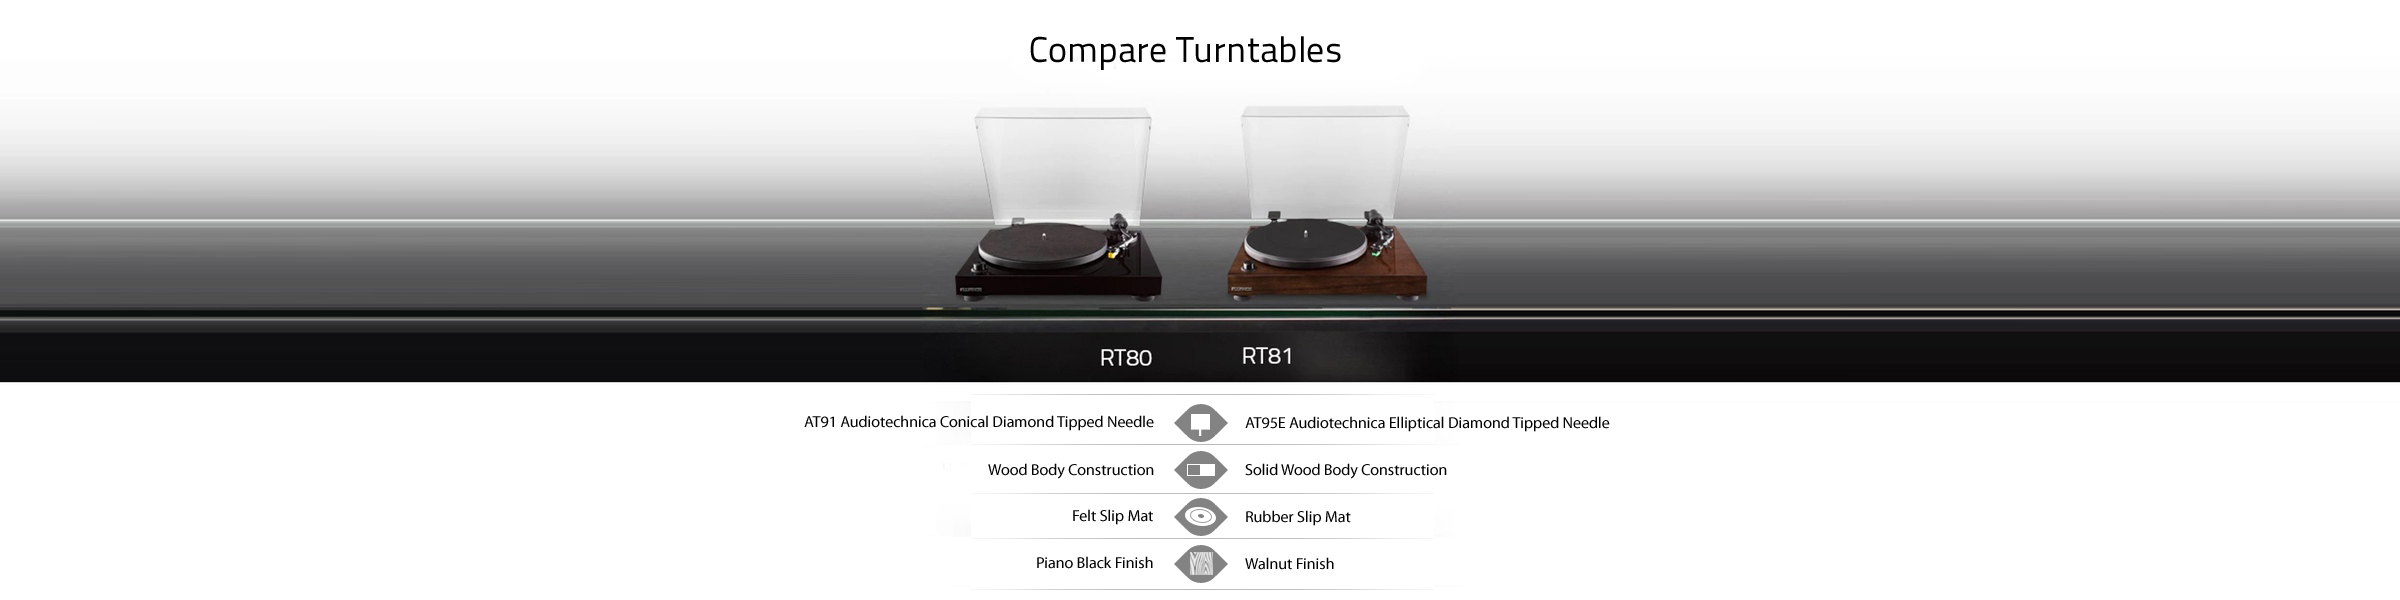 Rt80 Rt81 Compare